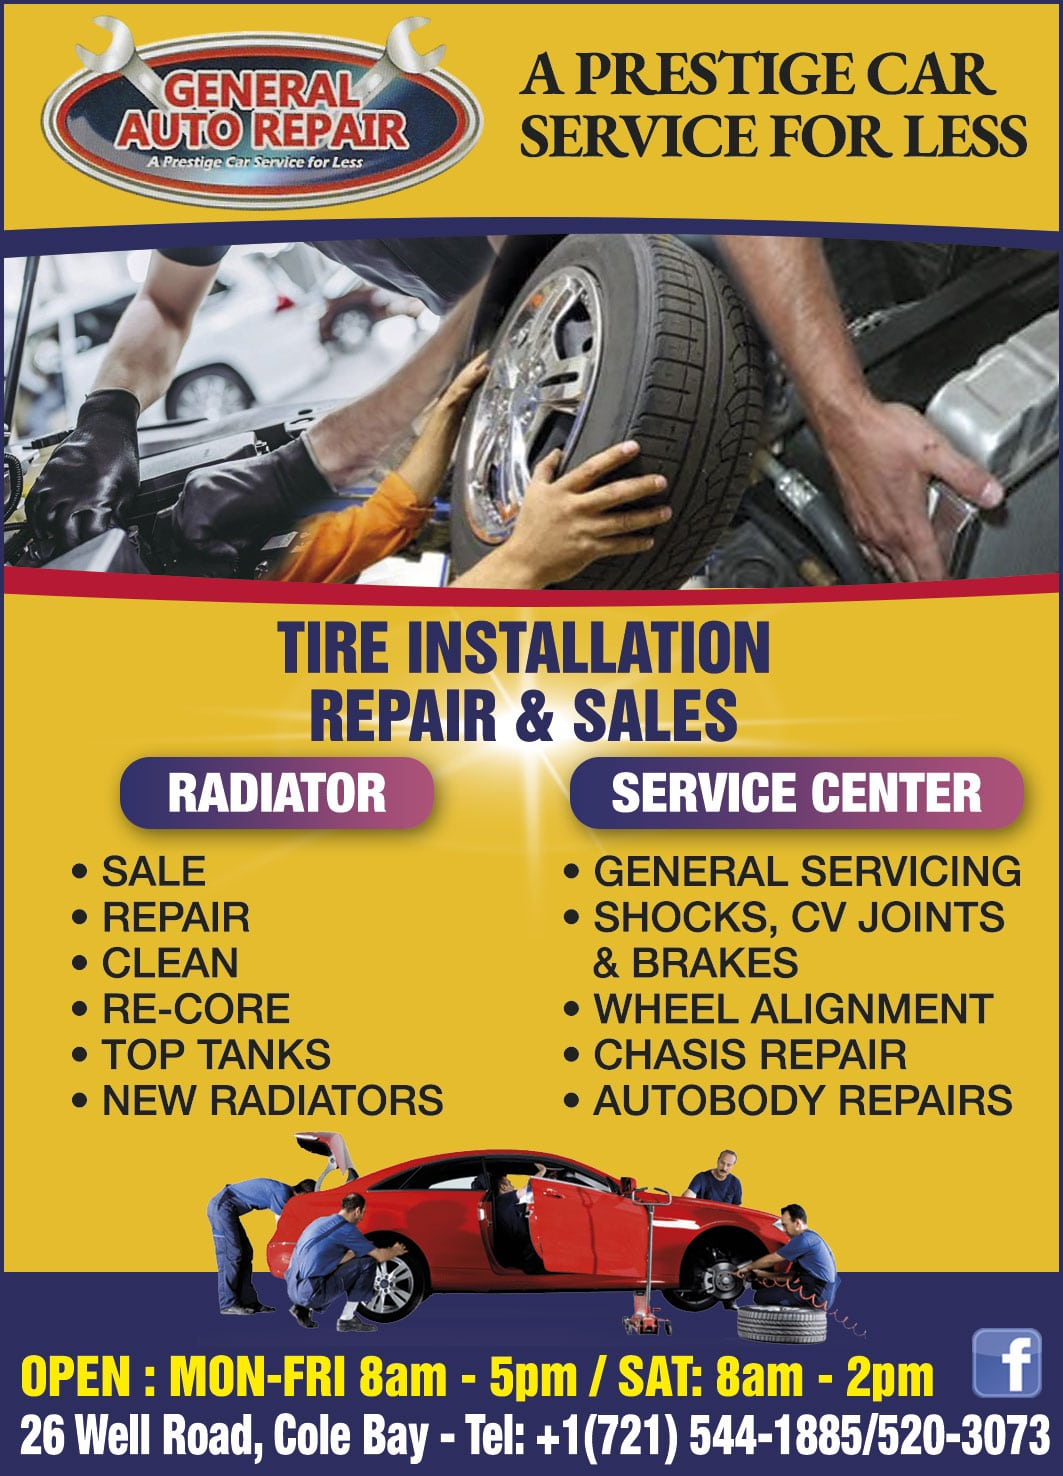 St Maarten Telephone Directory - General Auto Repair